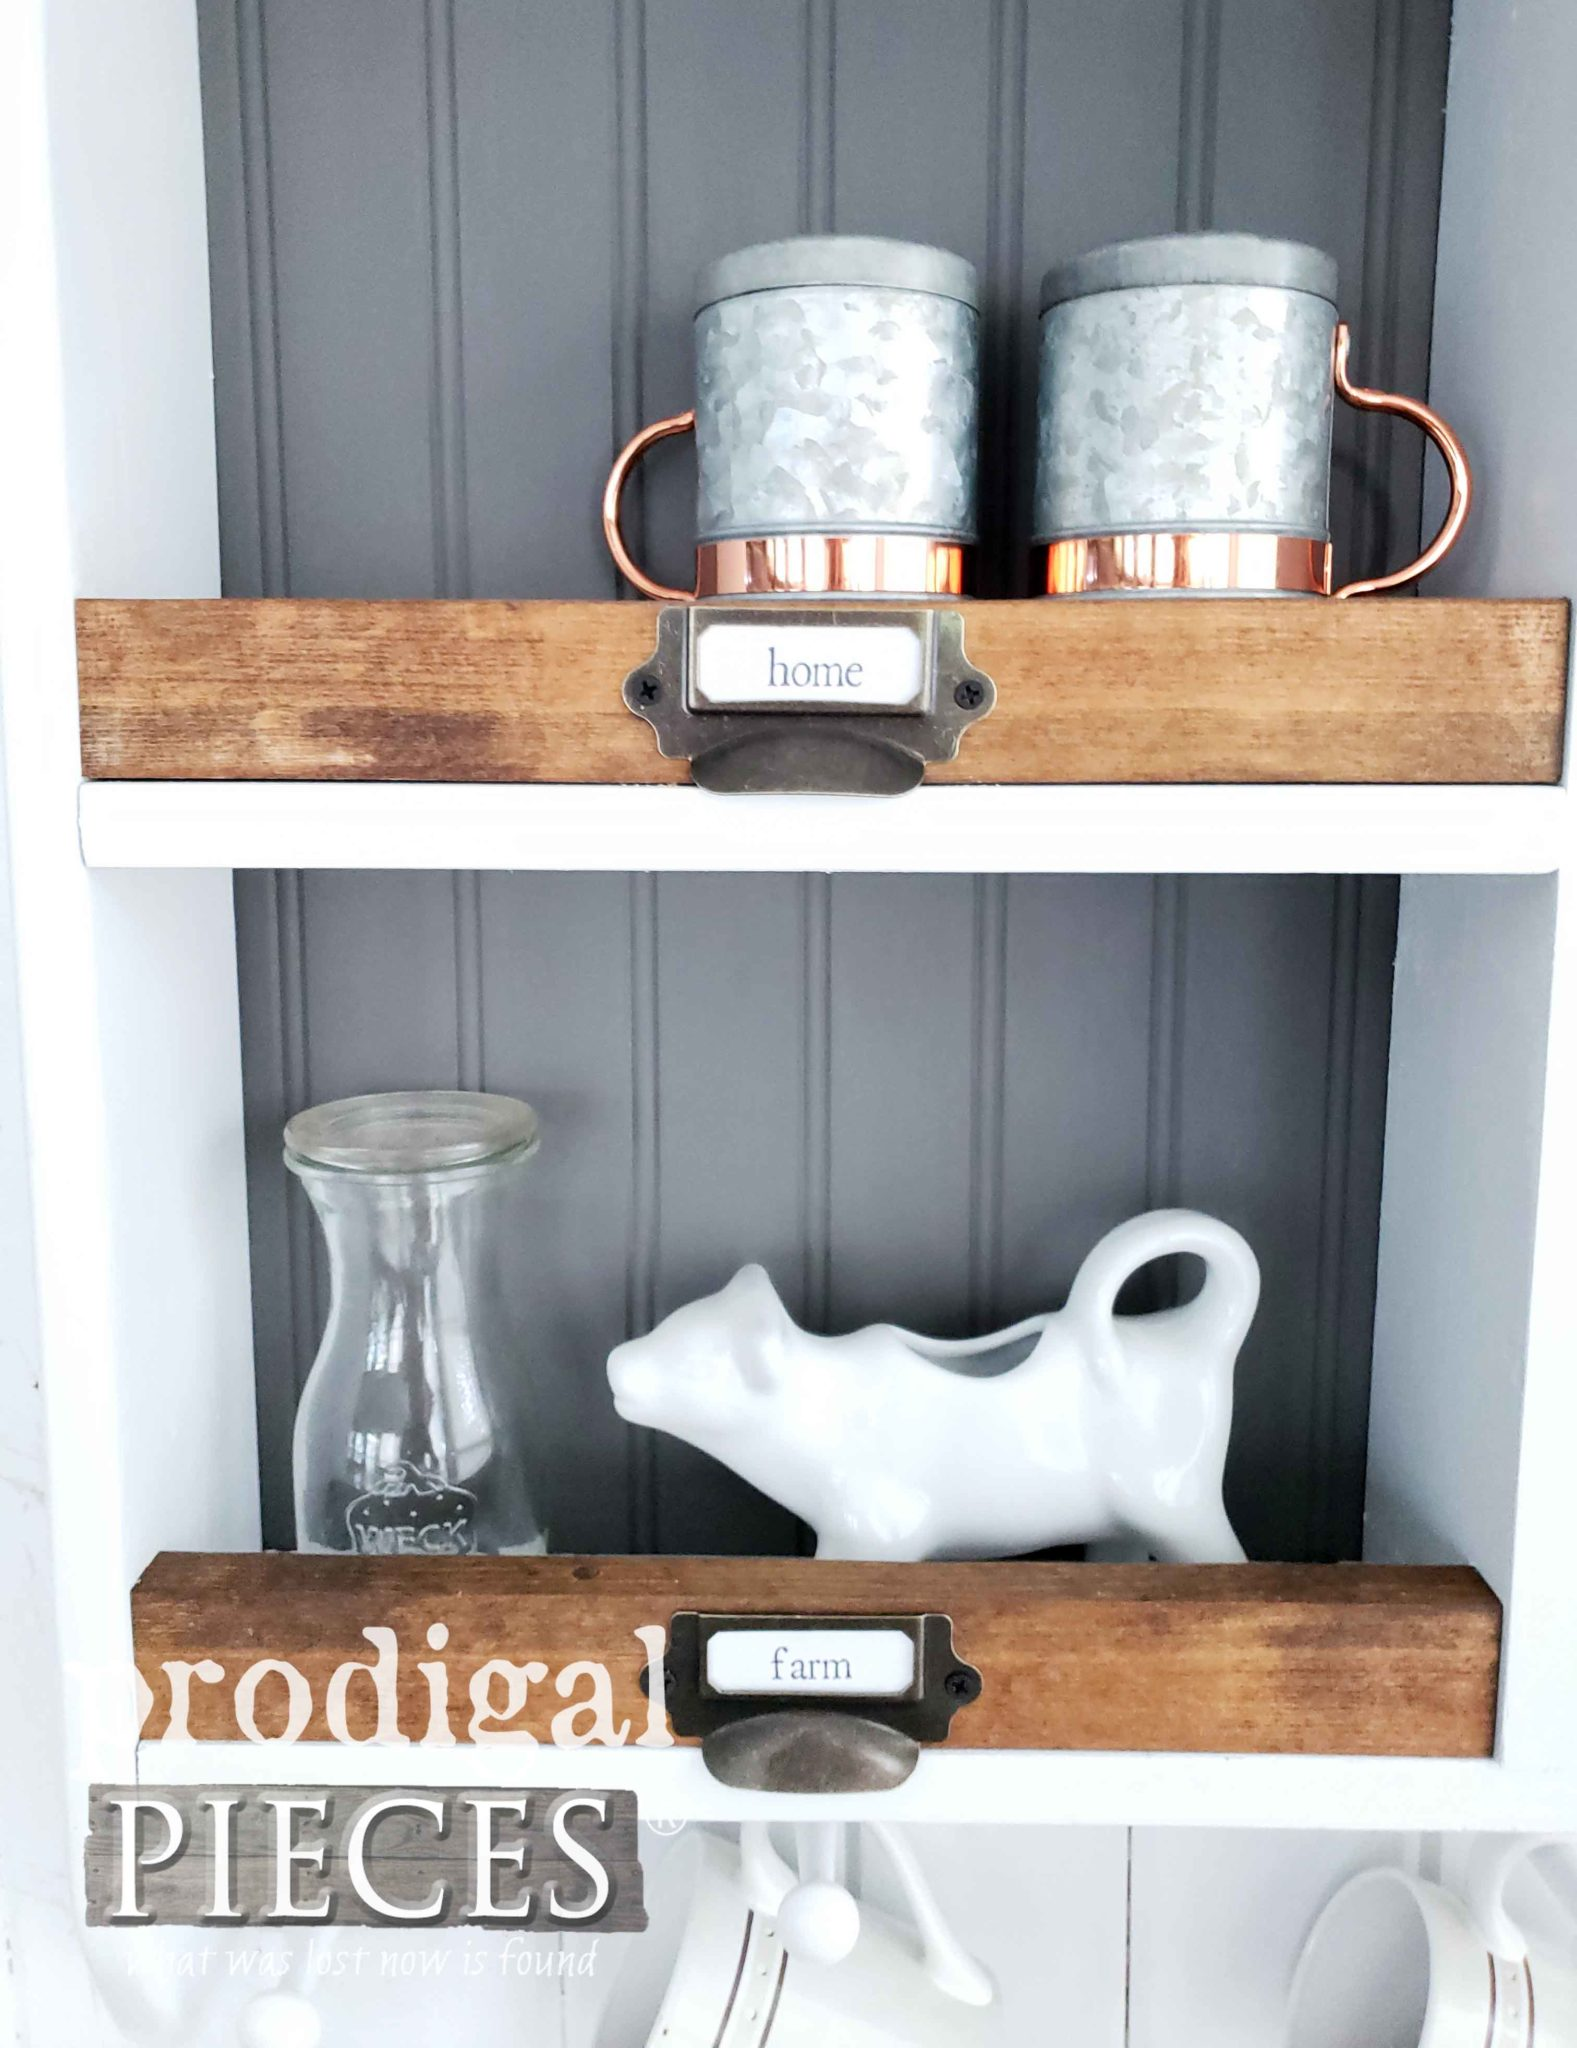 Apothecary Bin Labels on Farmhouse Storage Cubby by Larissa of Prodigal Pieces | prodigalpieces.com